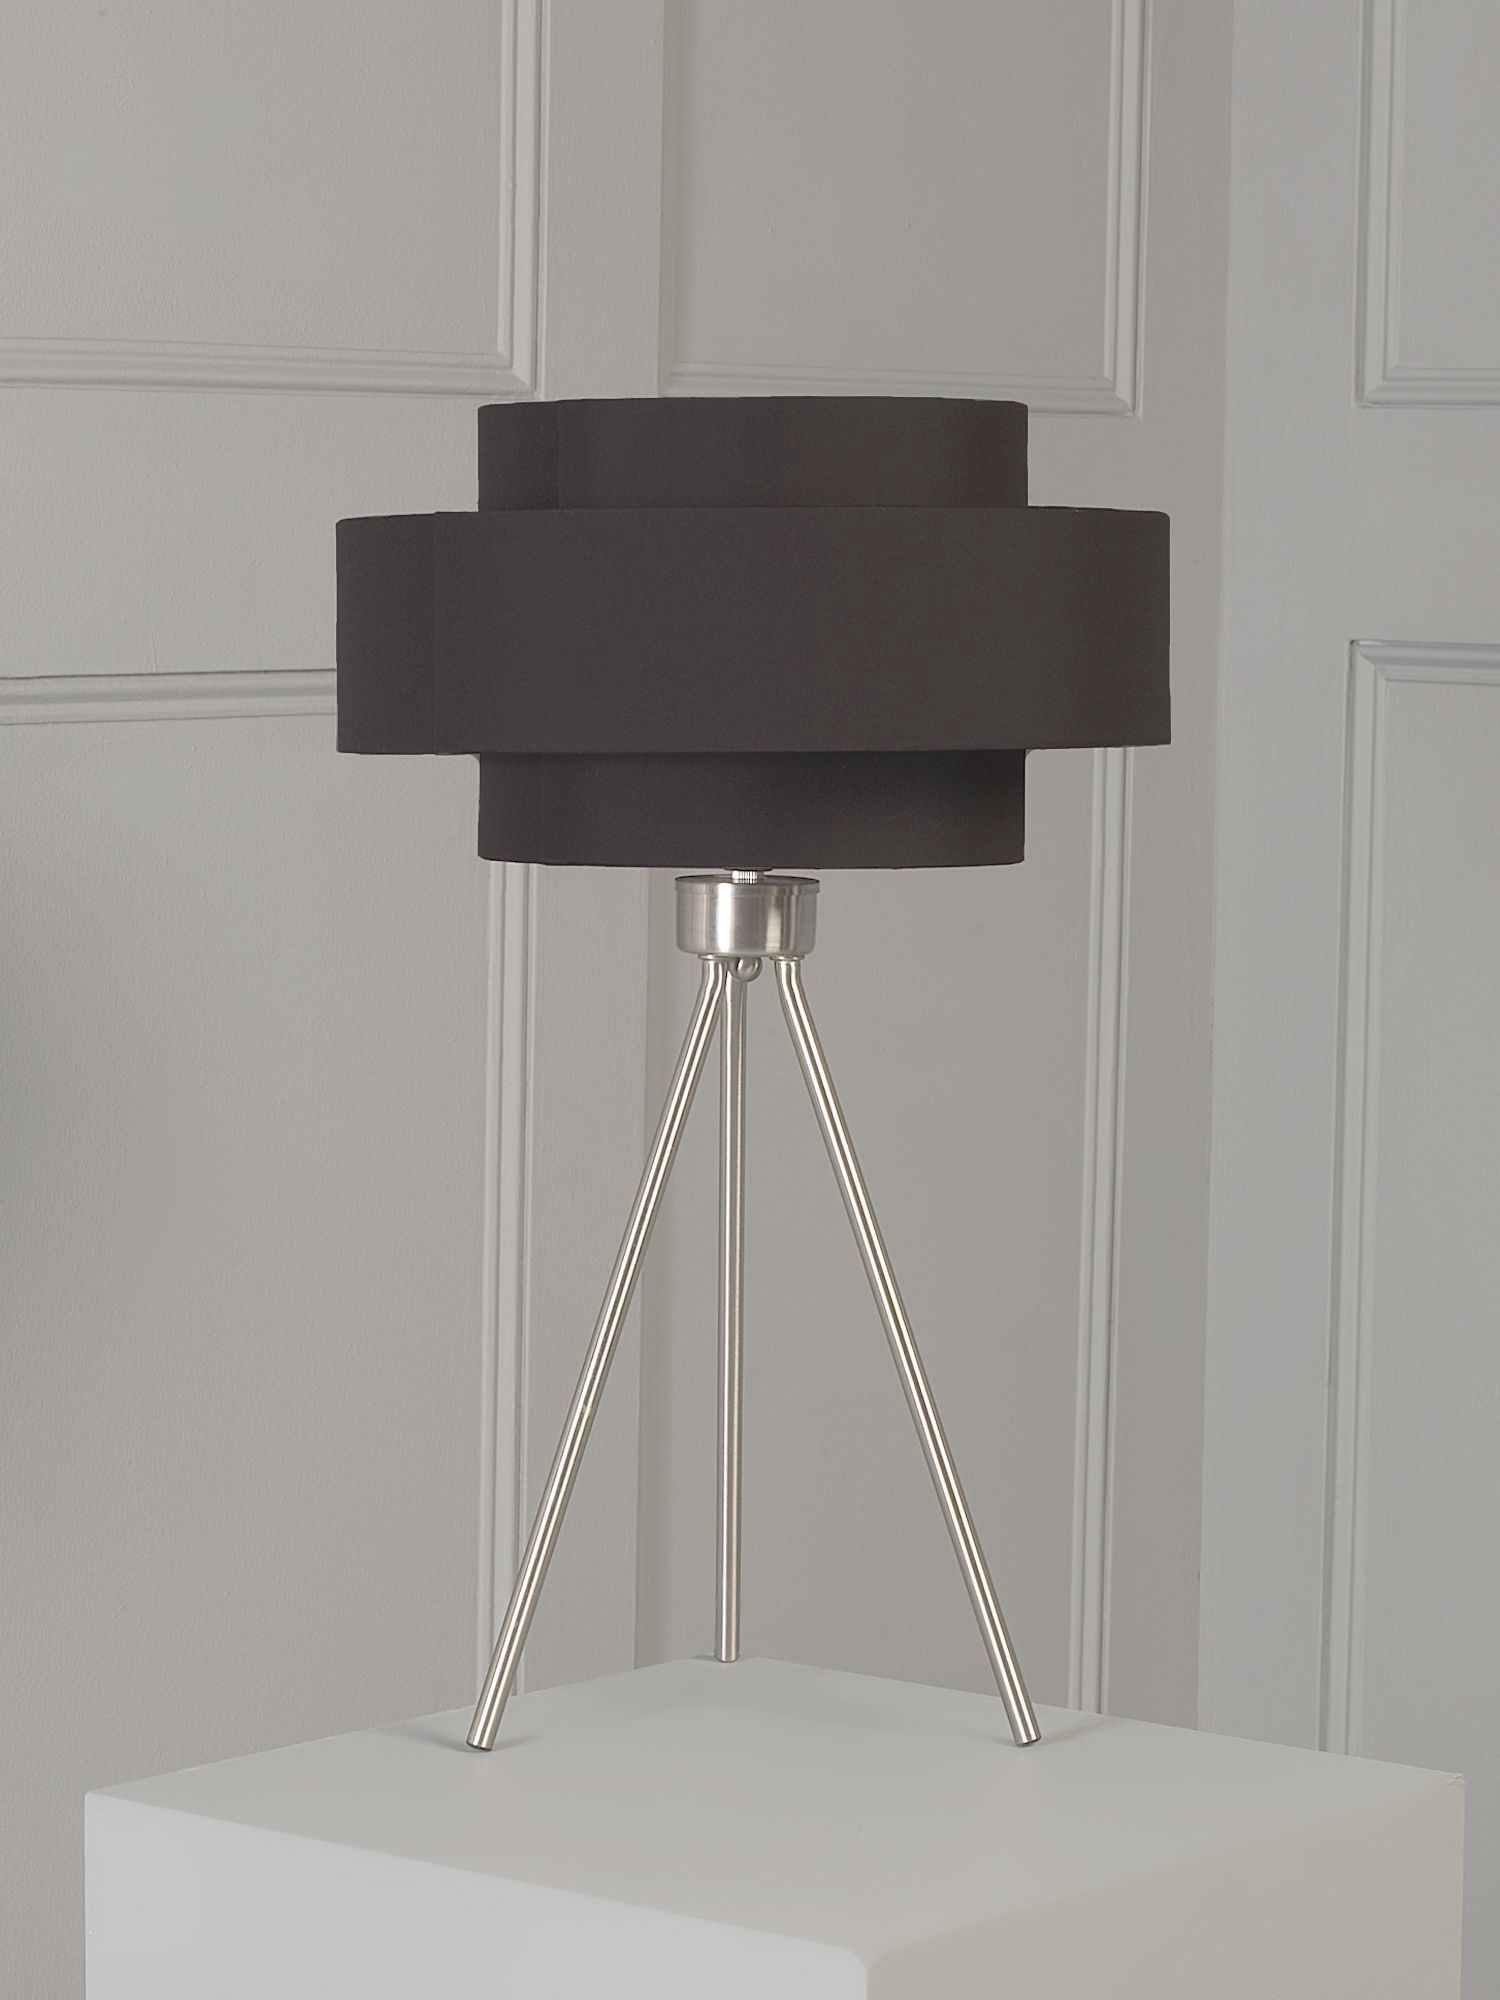 Noho tripod table lamp